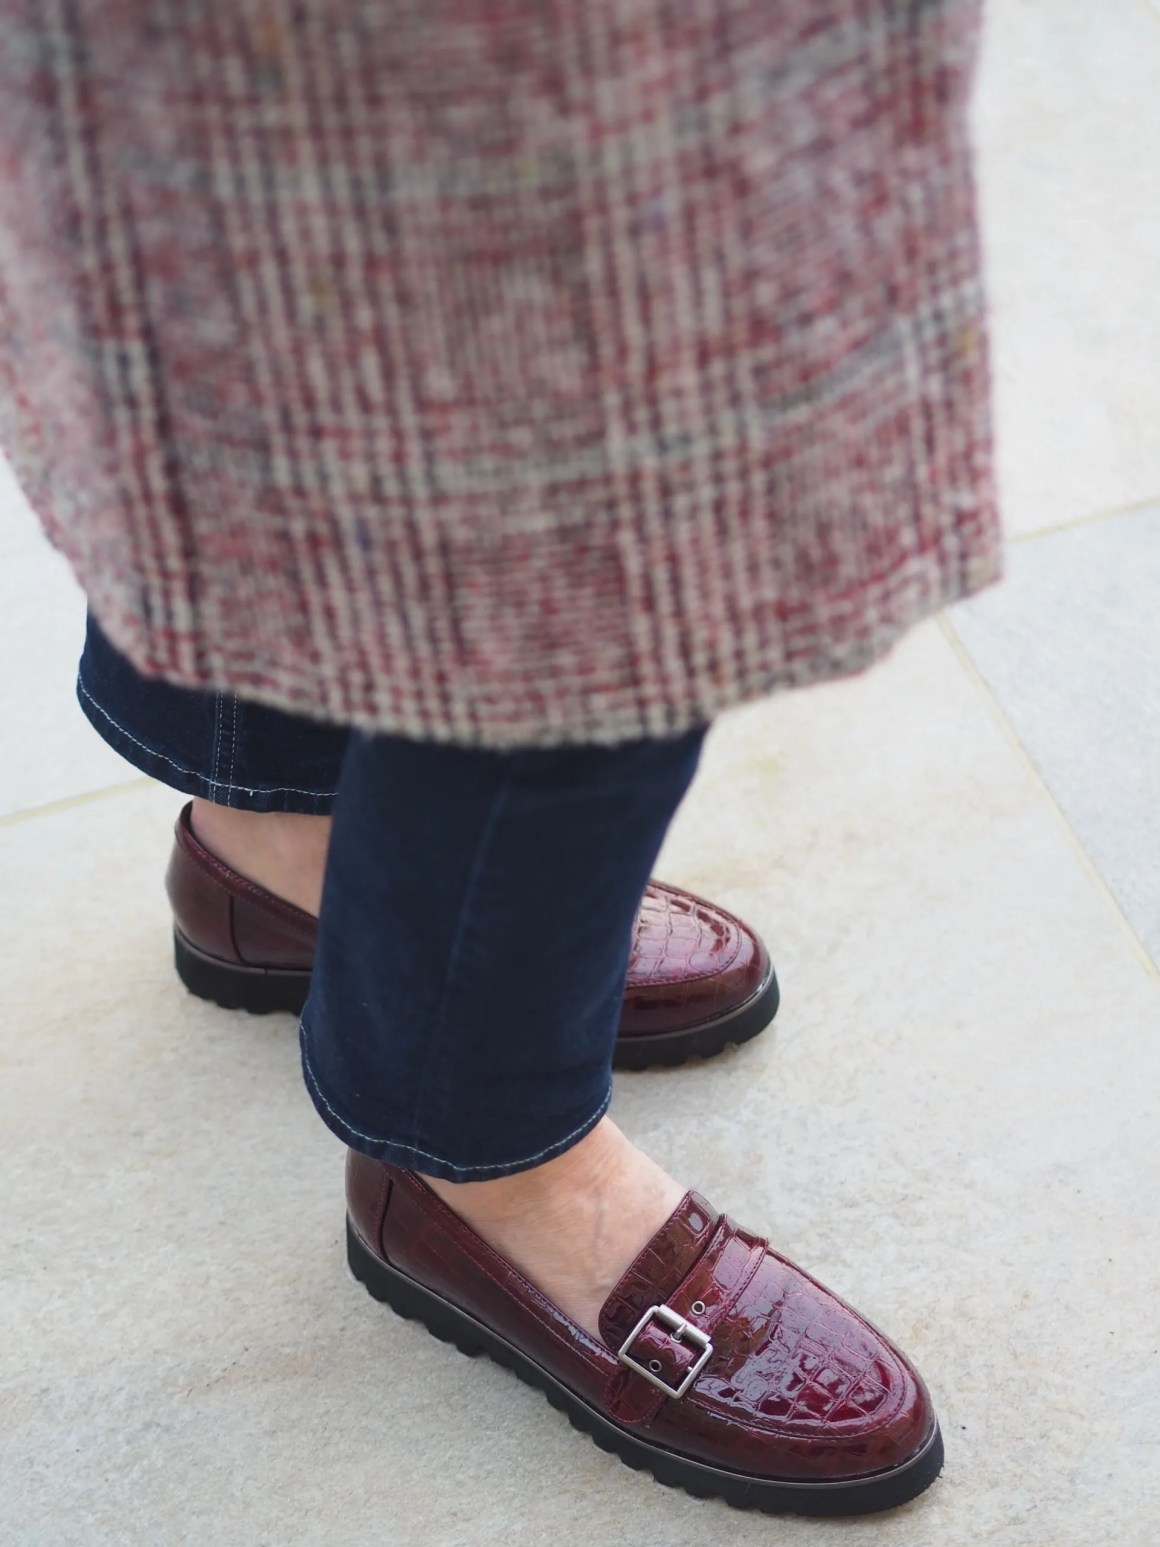 mock-croc loafers outfit